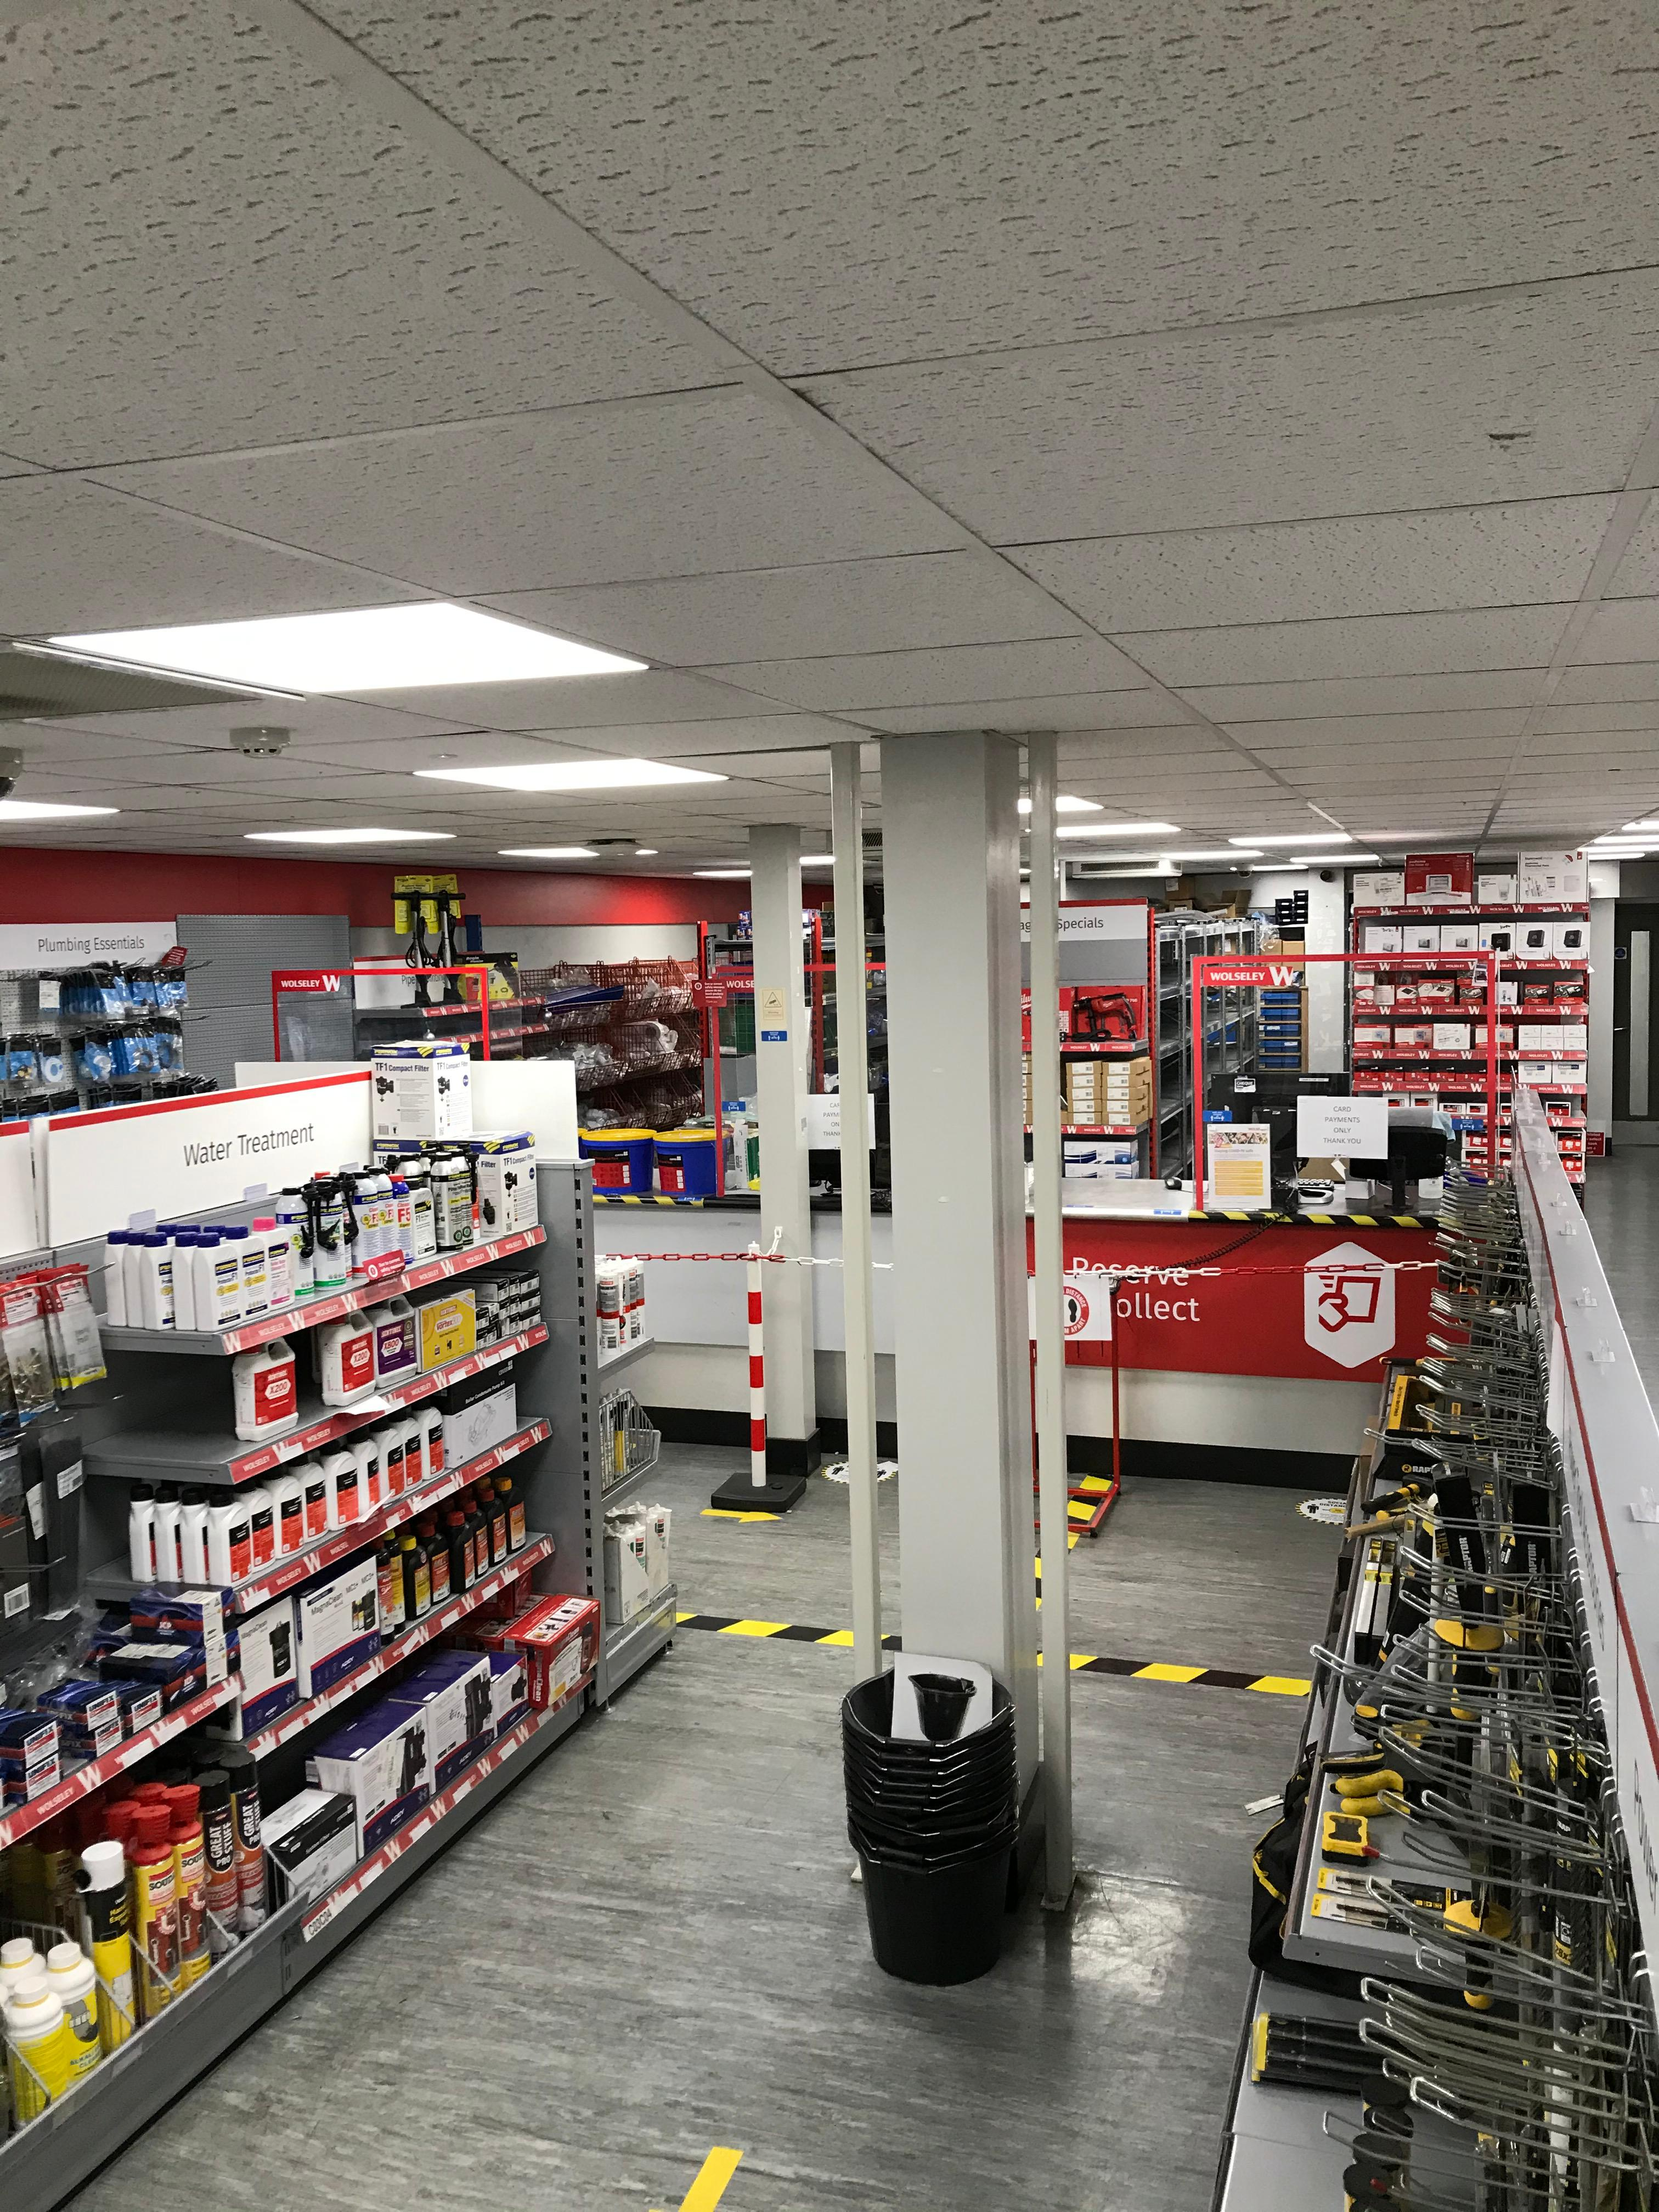 Image of the store